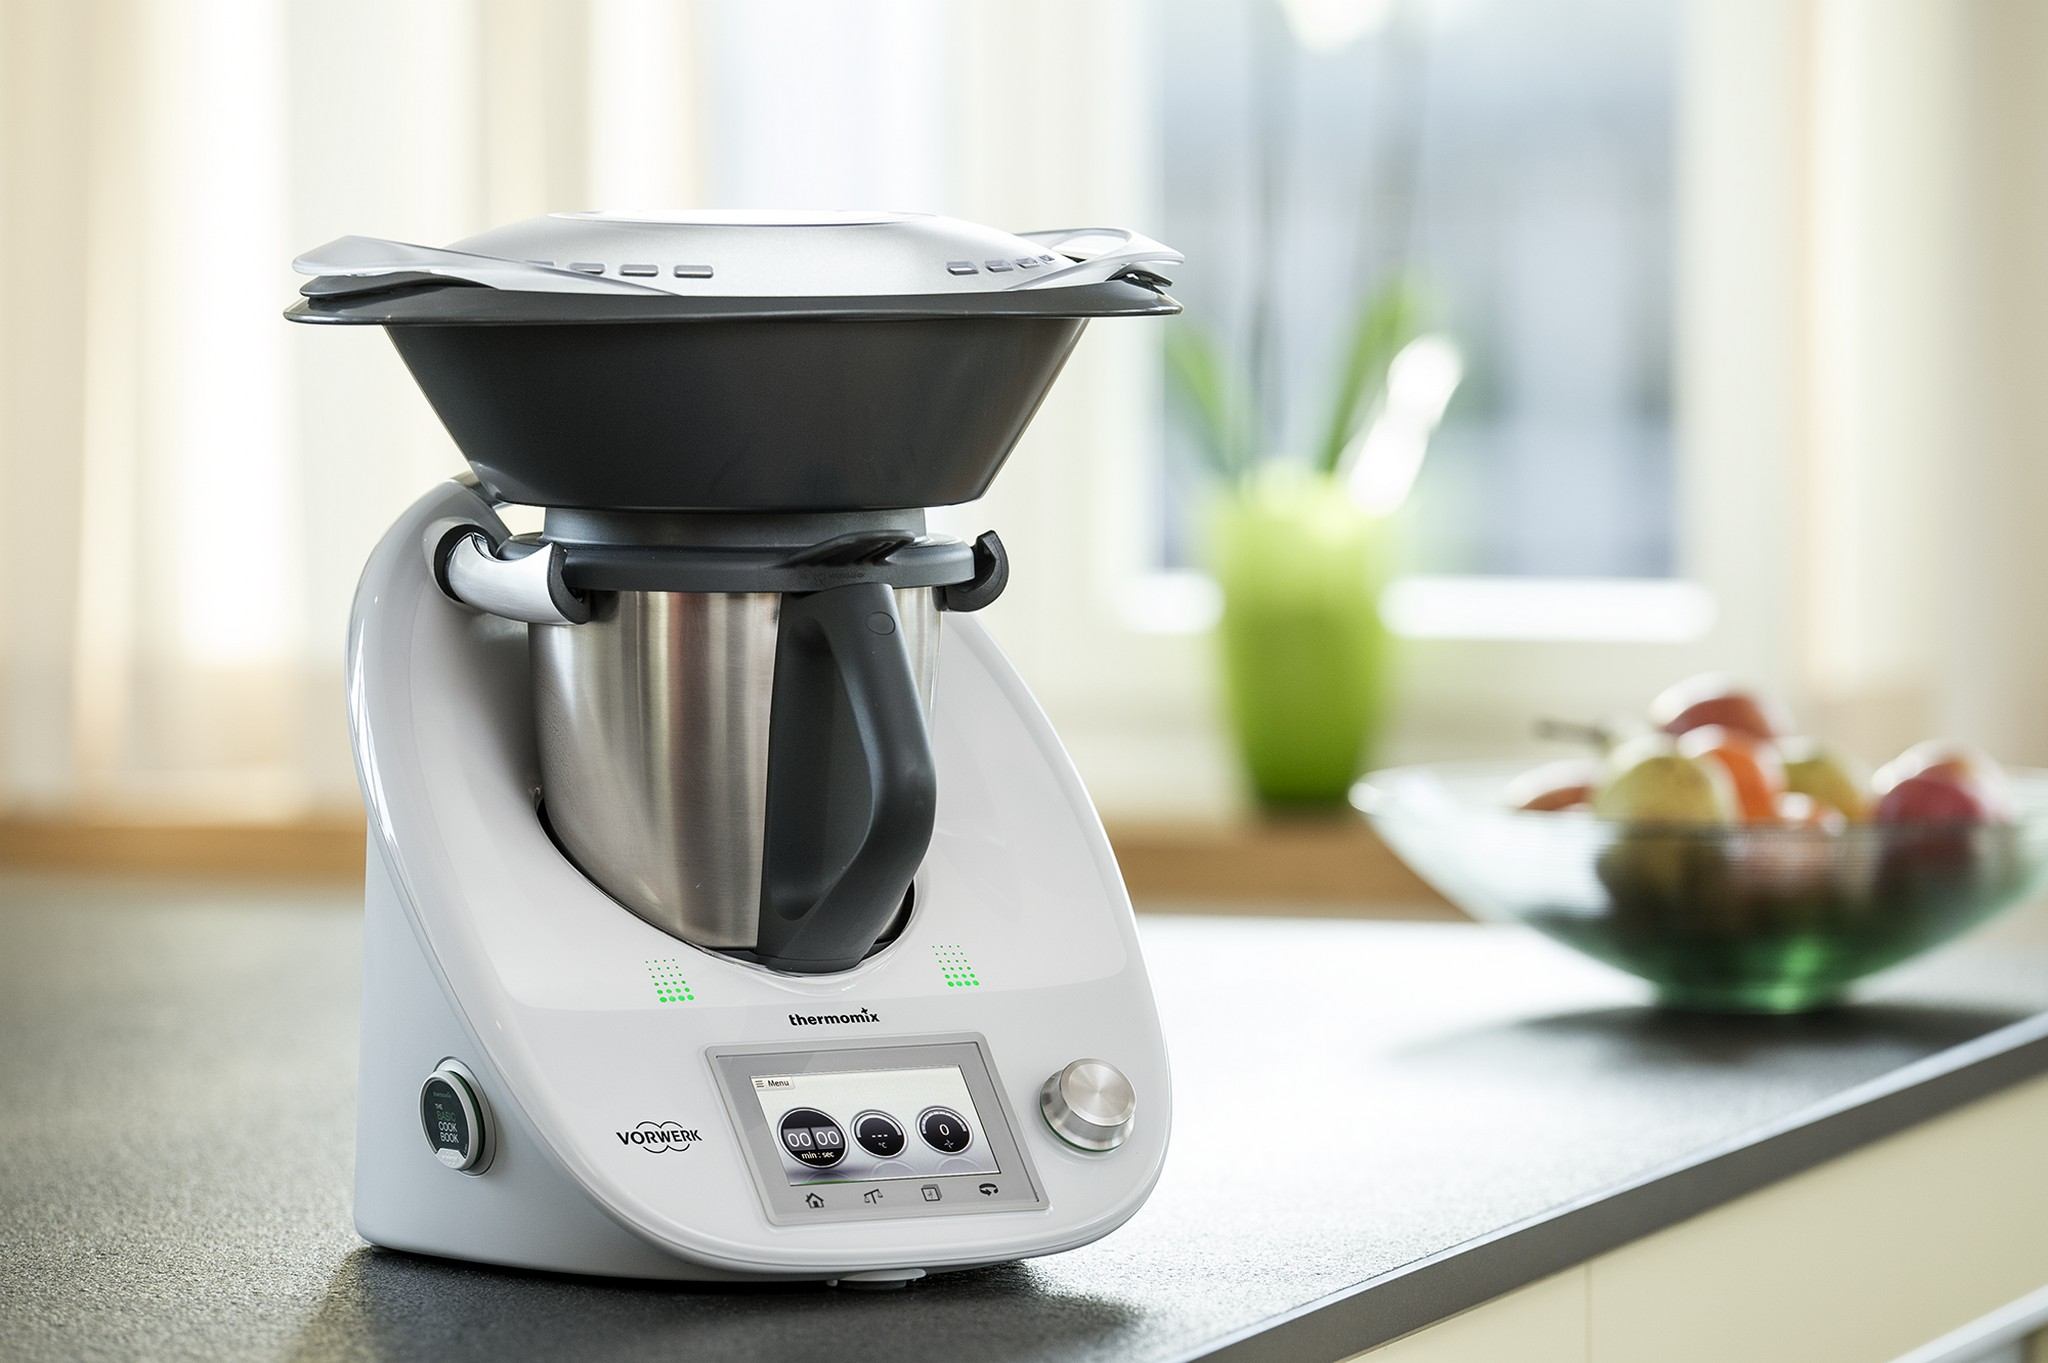 Thermomix tm5 pantalla t ctil y recetas digitales for Cocinar 4 niveles thermomix